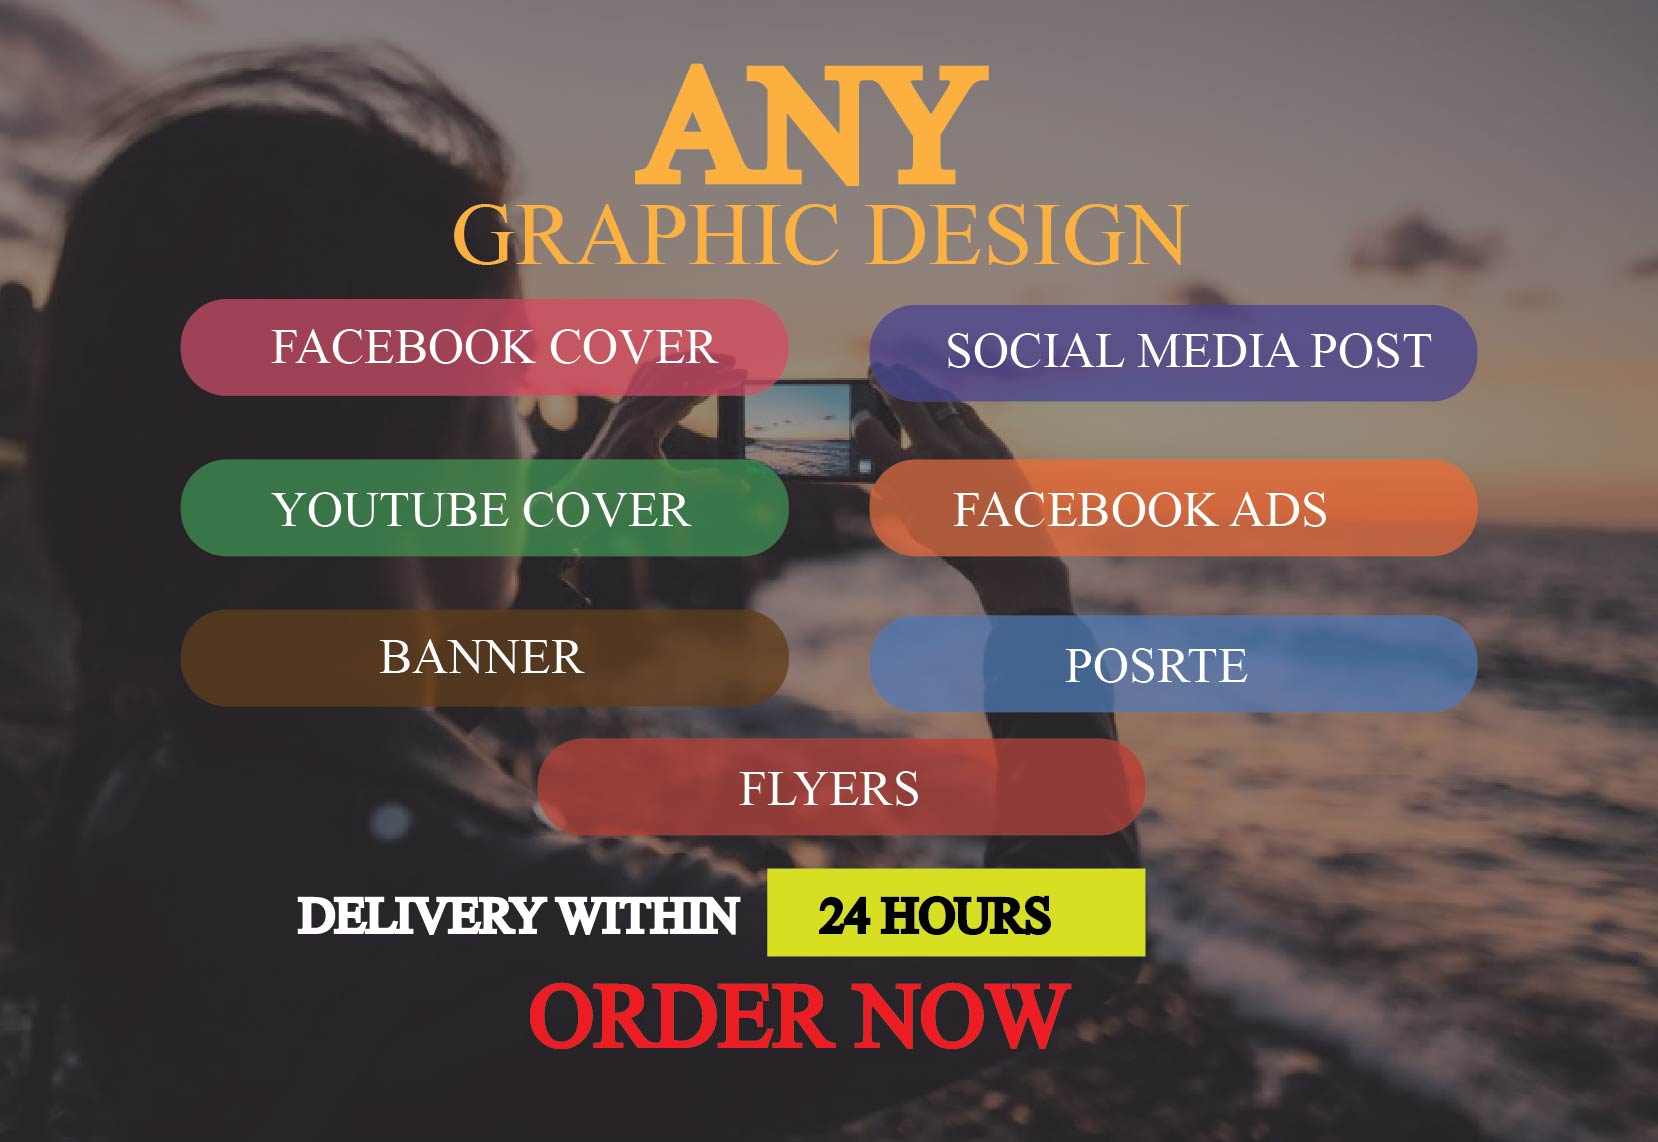 I will design 3 Facebook Cover and Social Media Post For You